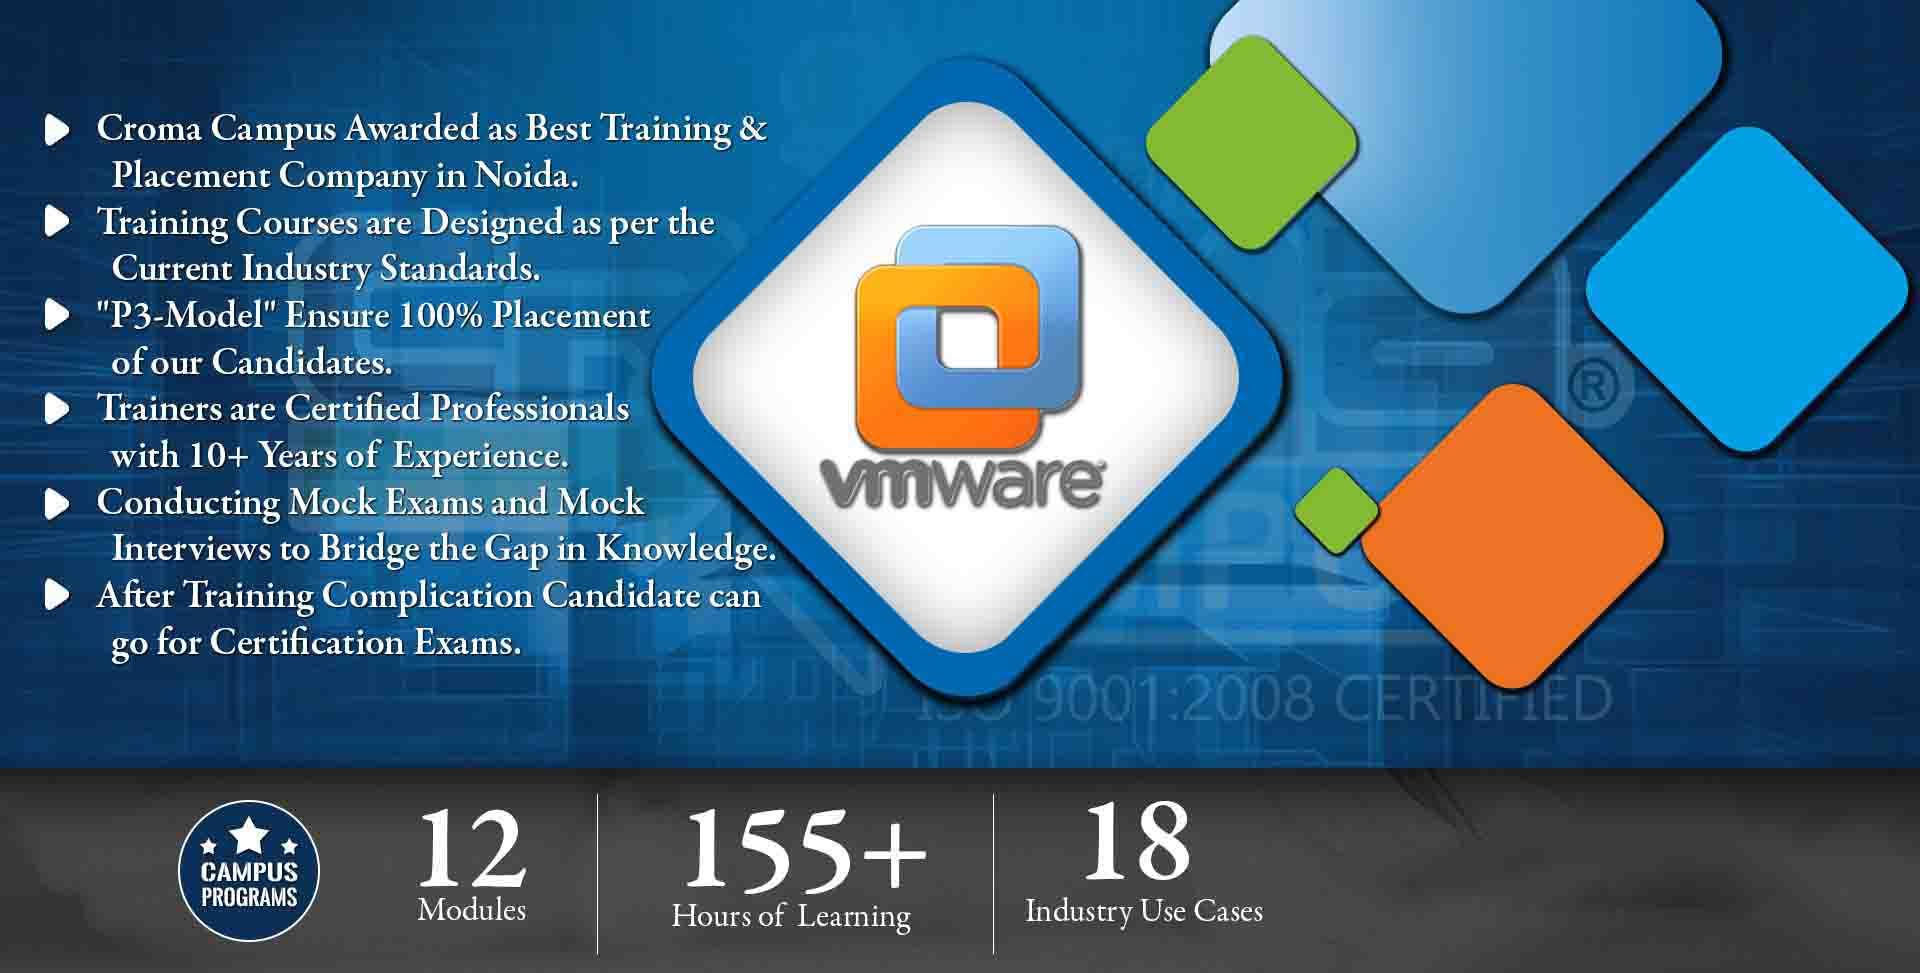 VMware Training in Noida- Croma Campus